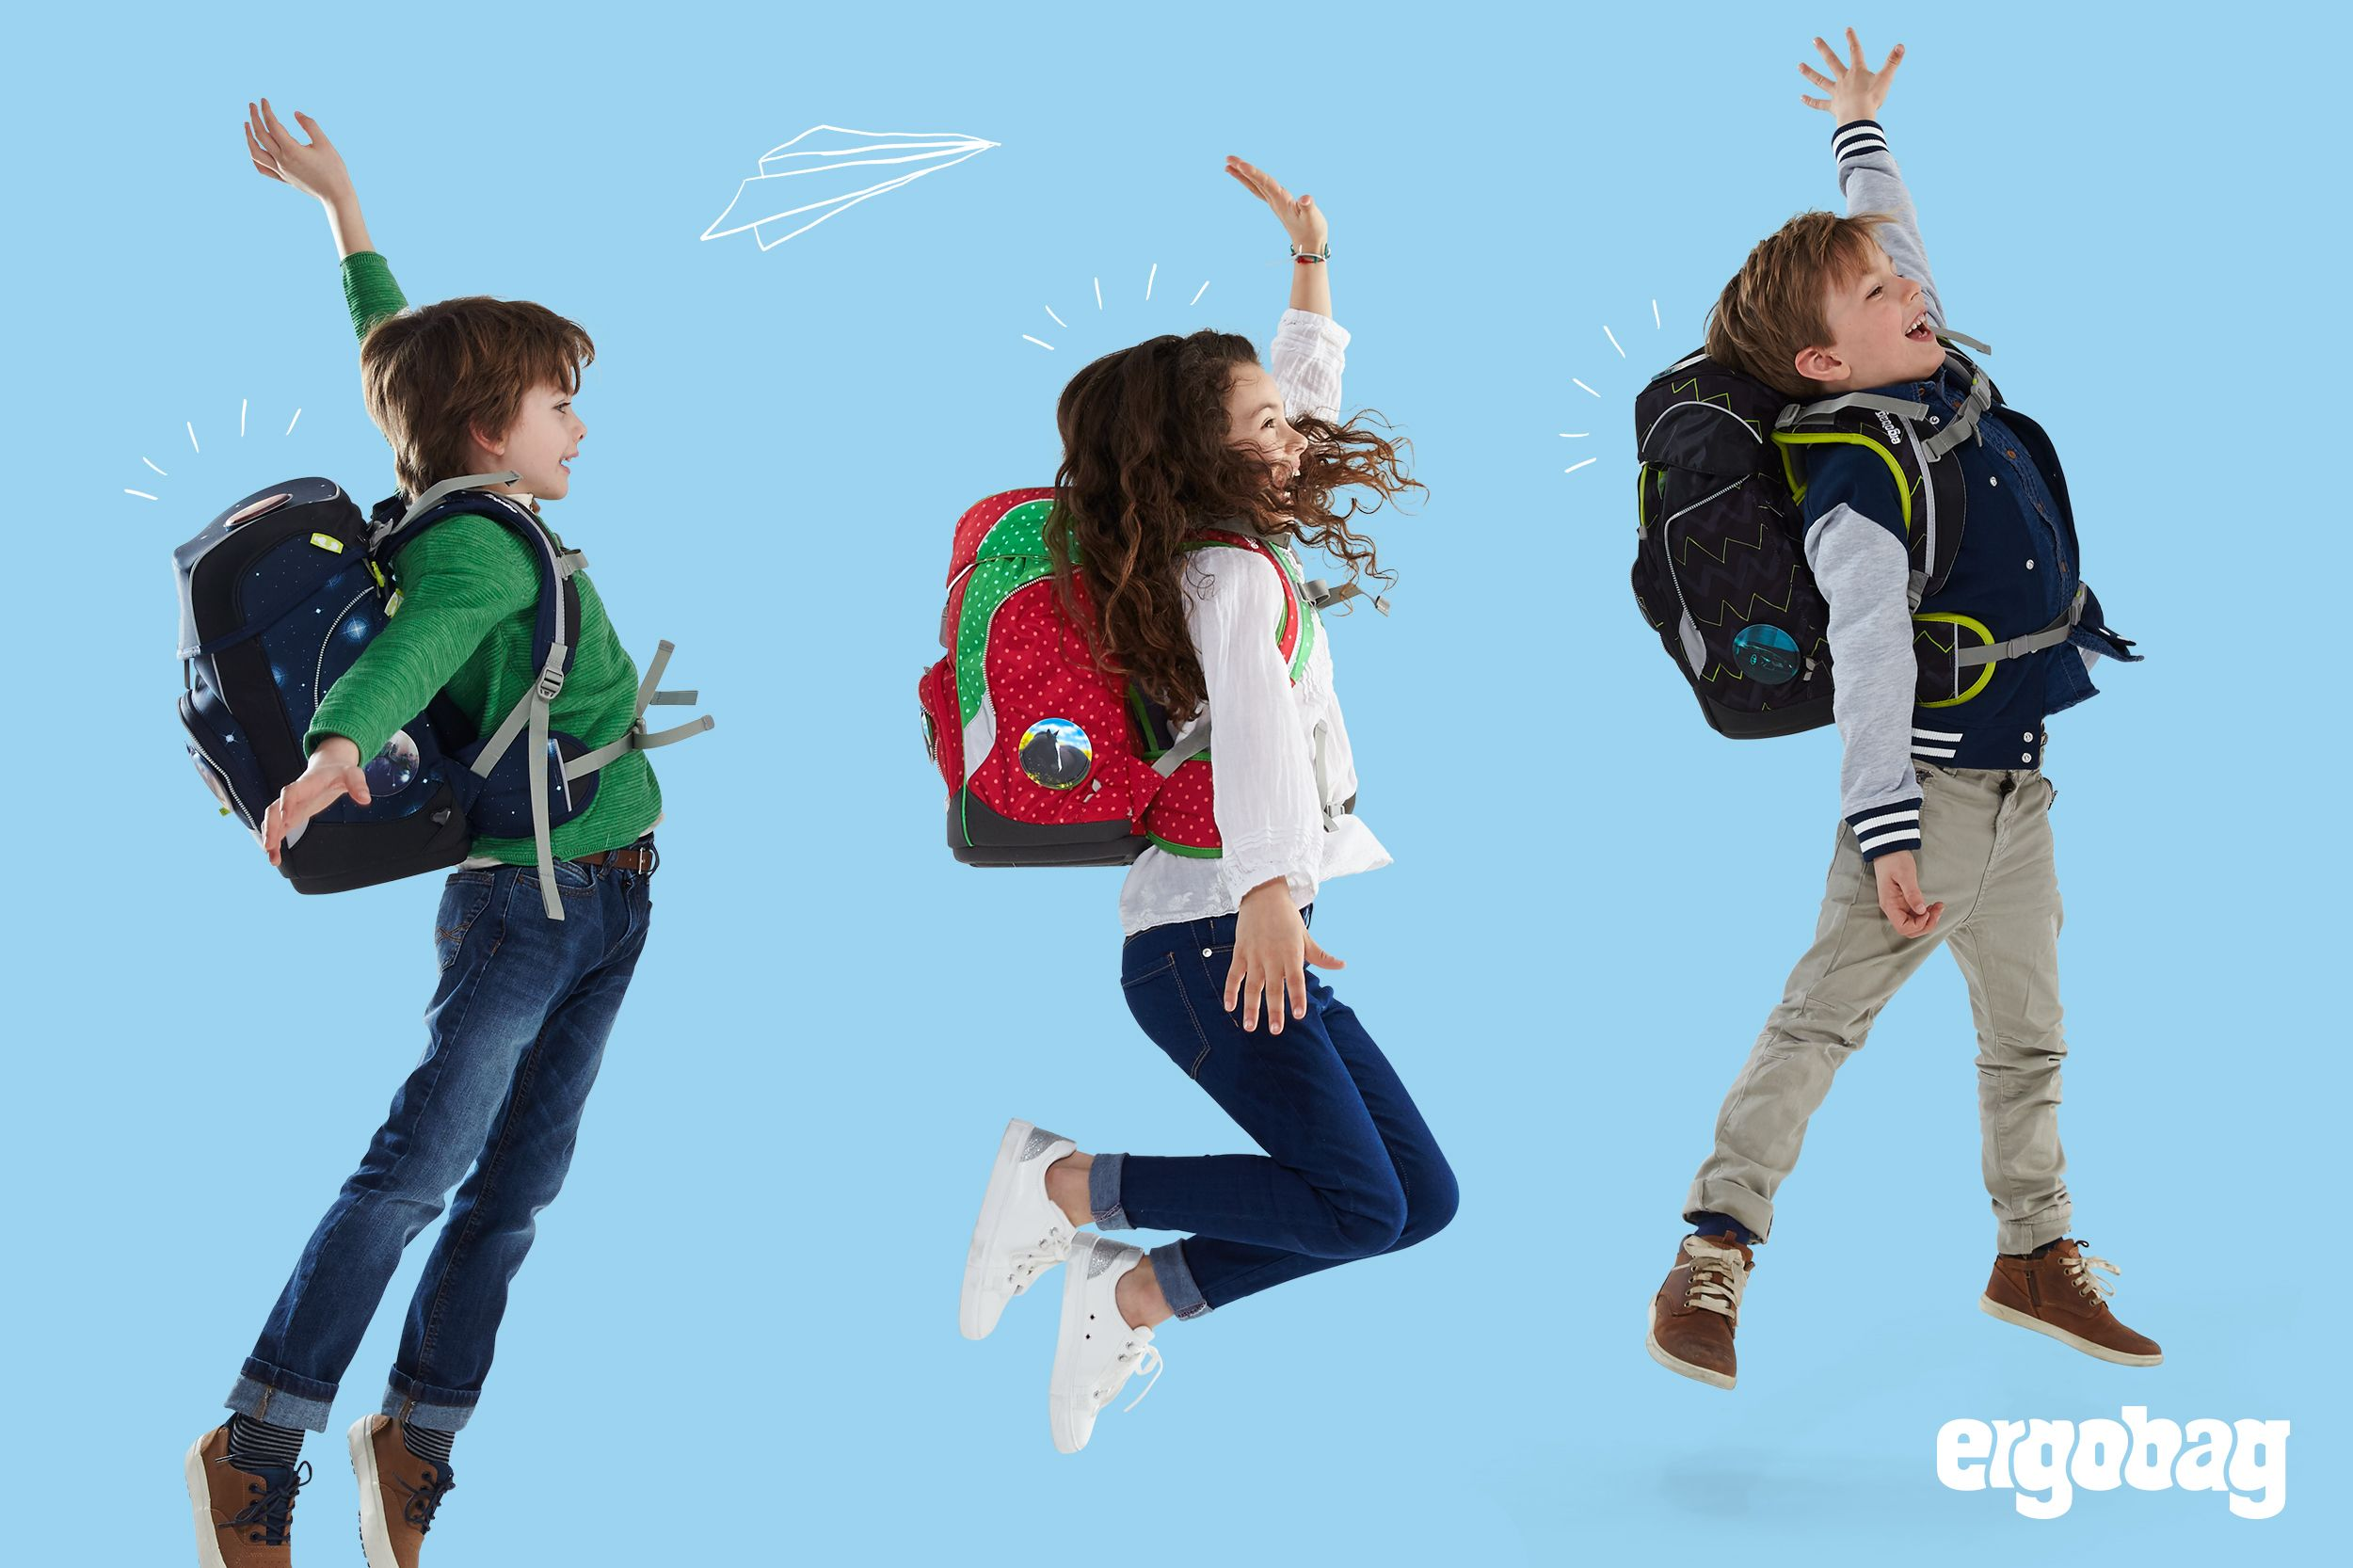 ergobag-three-kids-jumping-school-start